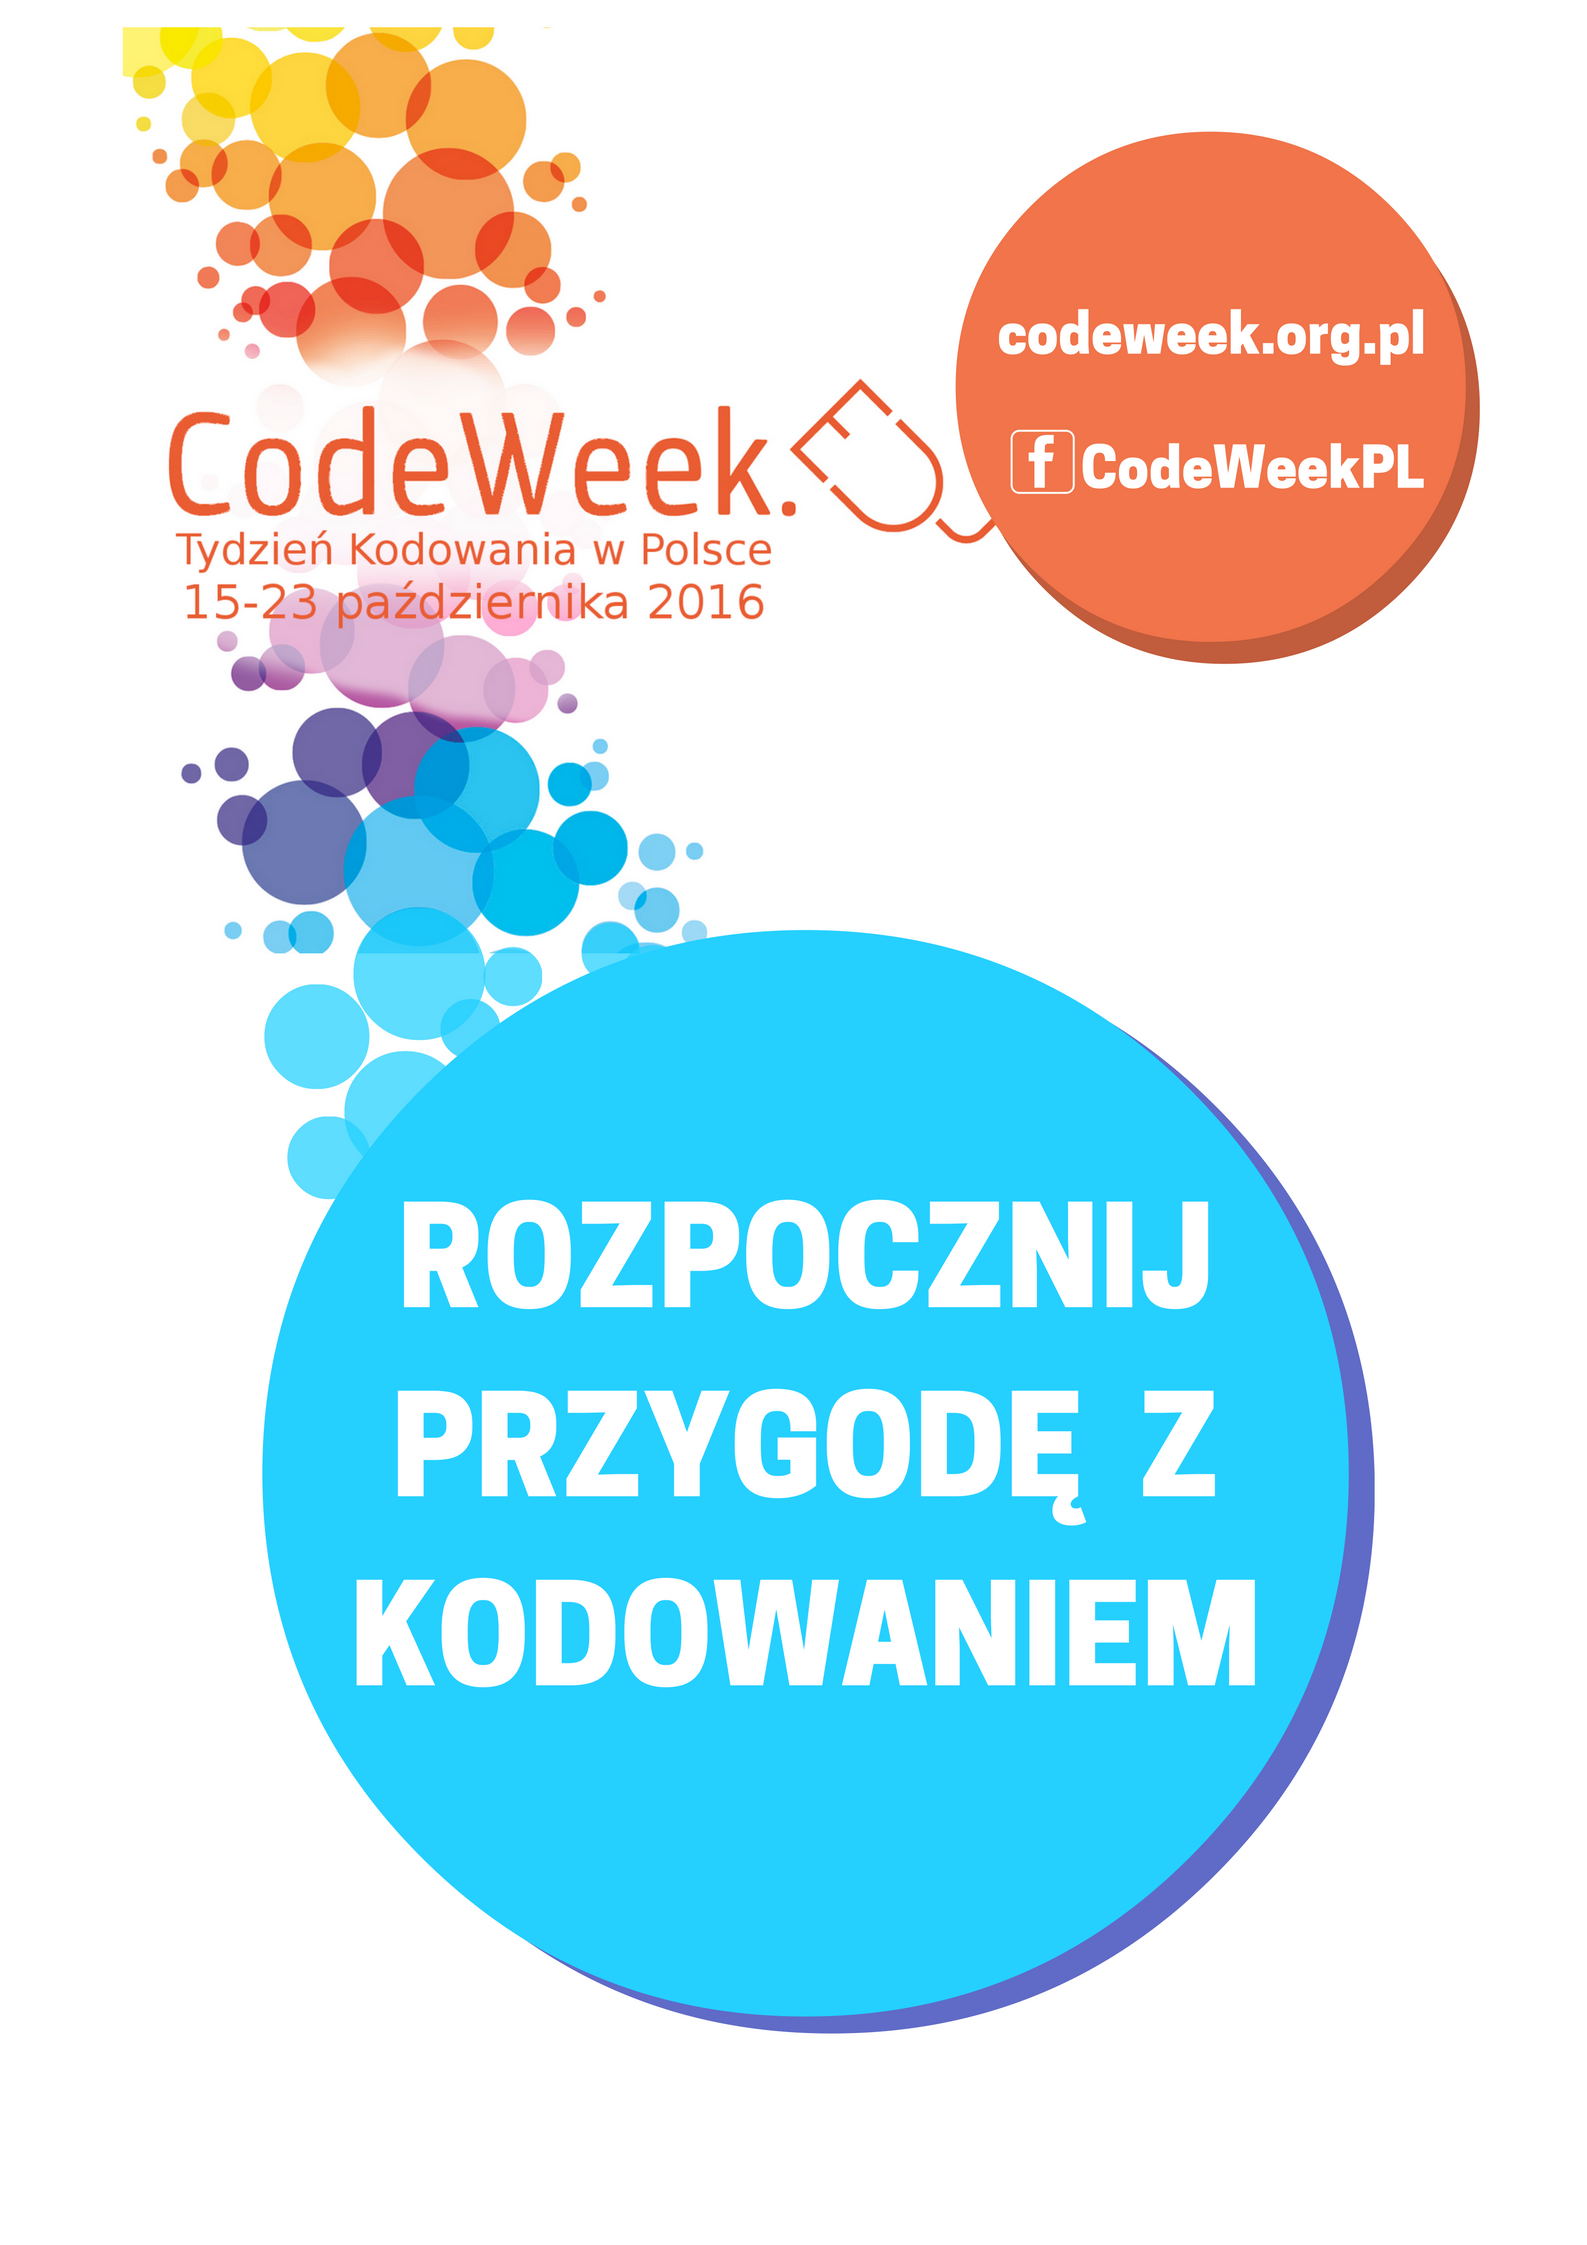 Copy of CodeWeek plakat